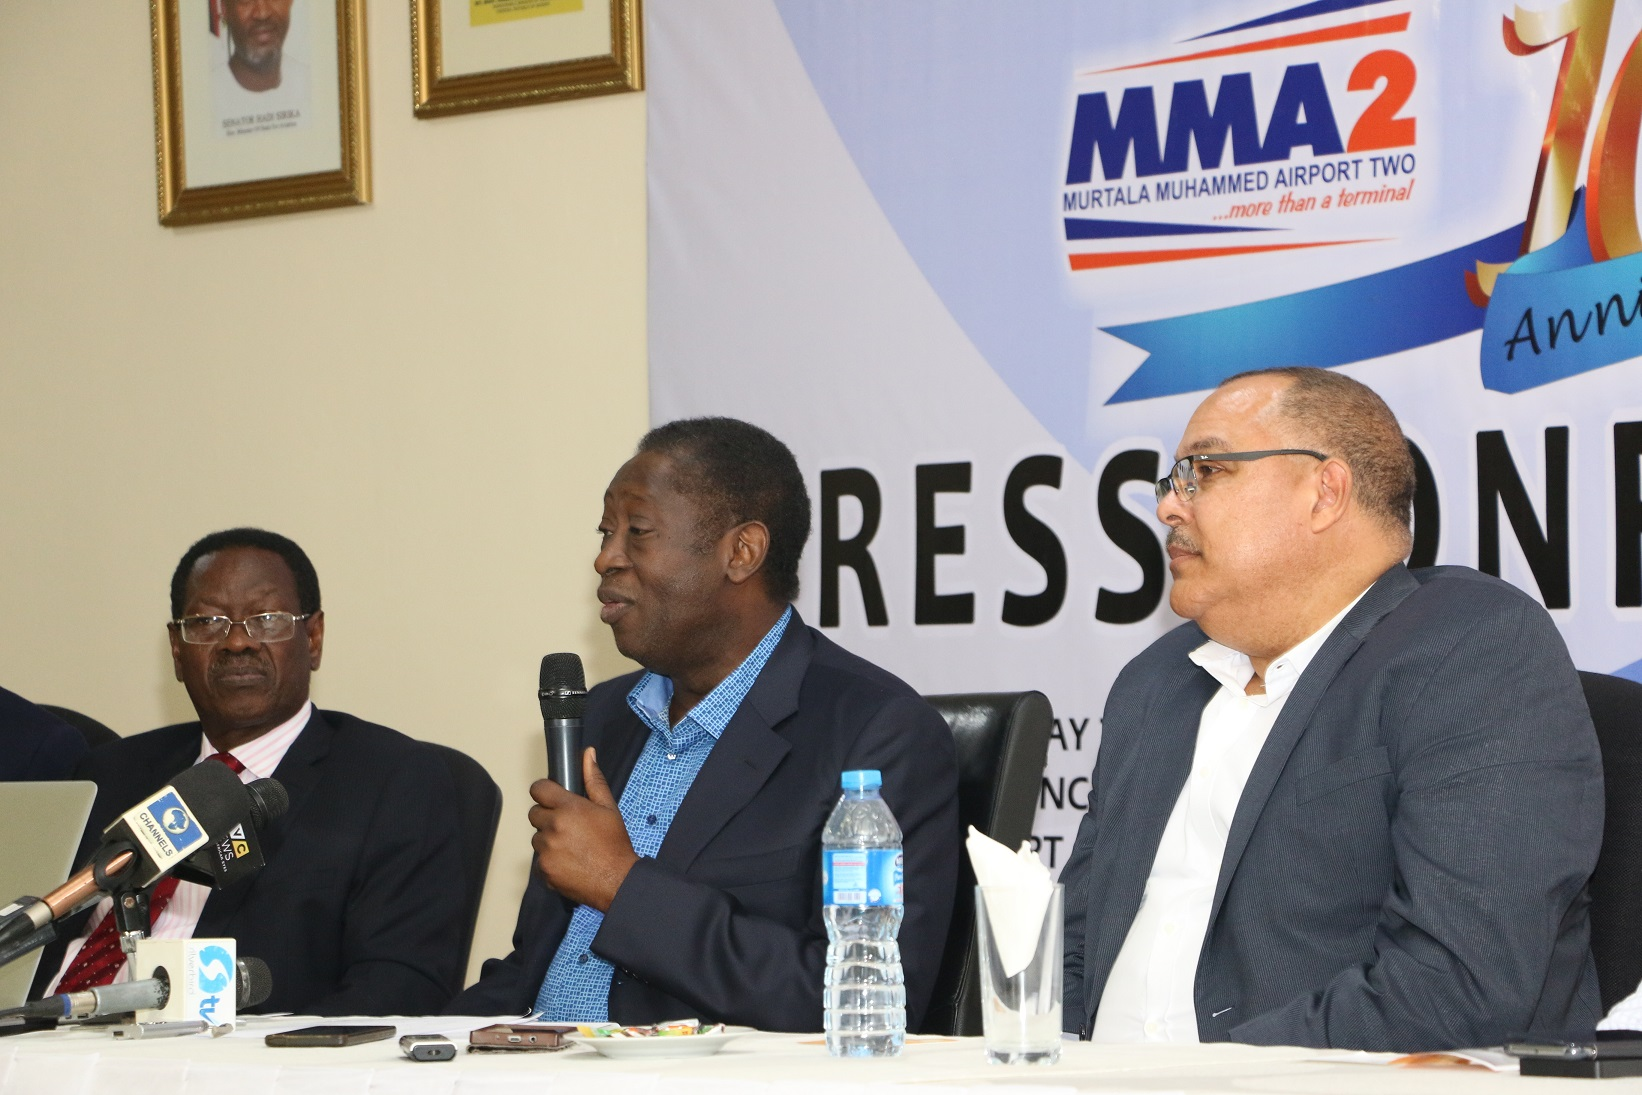 From left: Vice-Chairman, The Resort Group, Chief Kola Akinbami, Chairman, Dr. Wale Babalakin (SAN) and Chief Executive Officer, Bi-Courtney Aviation Services Limited (BASL), a subsidiary of The Resort Group, Captain Jari Williams at the Murtala Muhammed Airport Terminal Two (MMA2's) 10th Anniversary Press Conference held in Lagos yesterday.